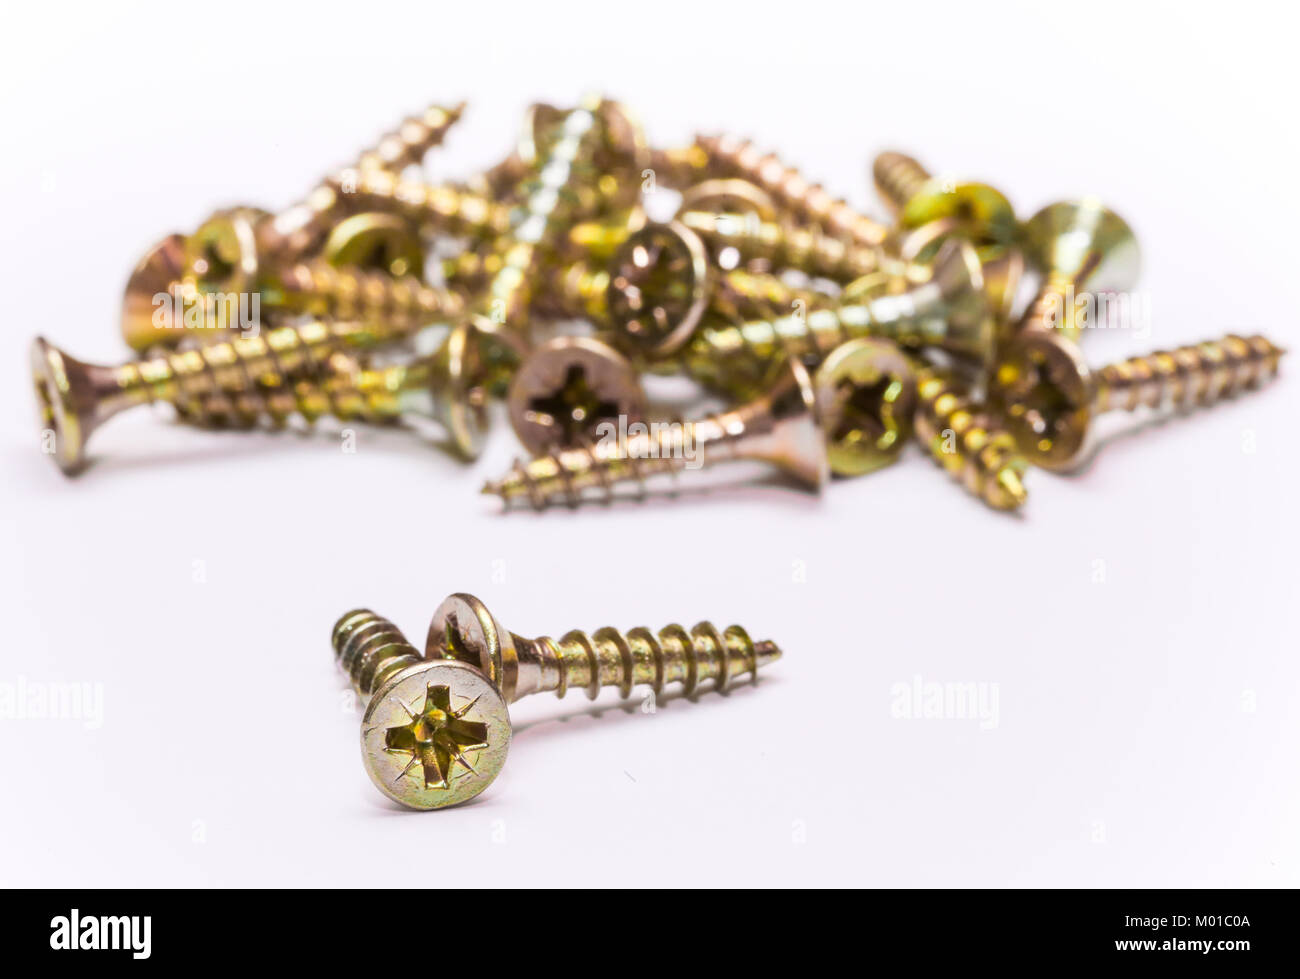 Bunch of yellow zinc coated philips flat head cross screws - fasteners on a white background - Stock Image